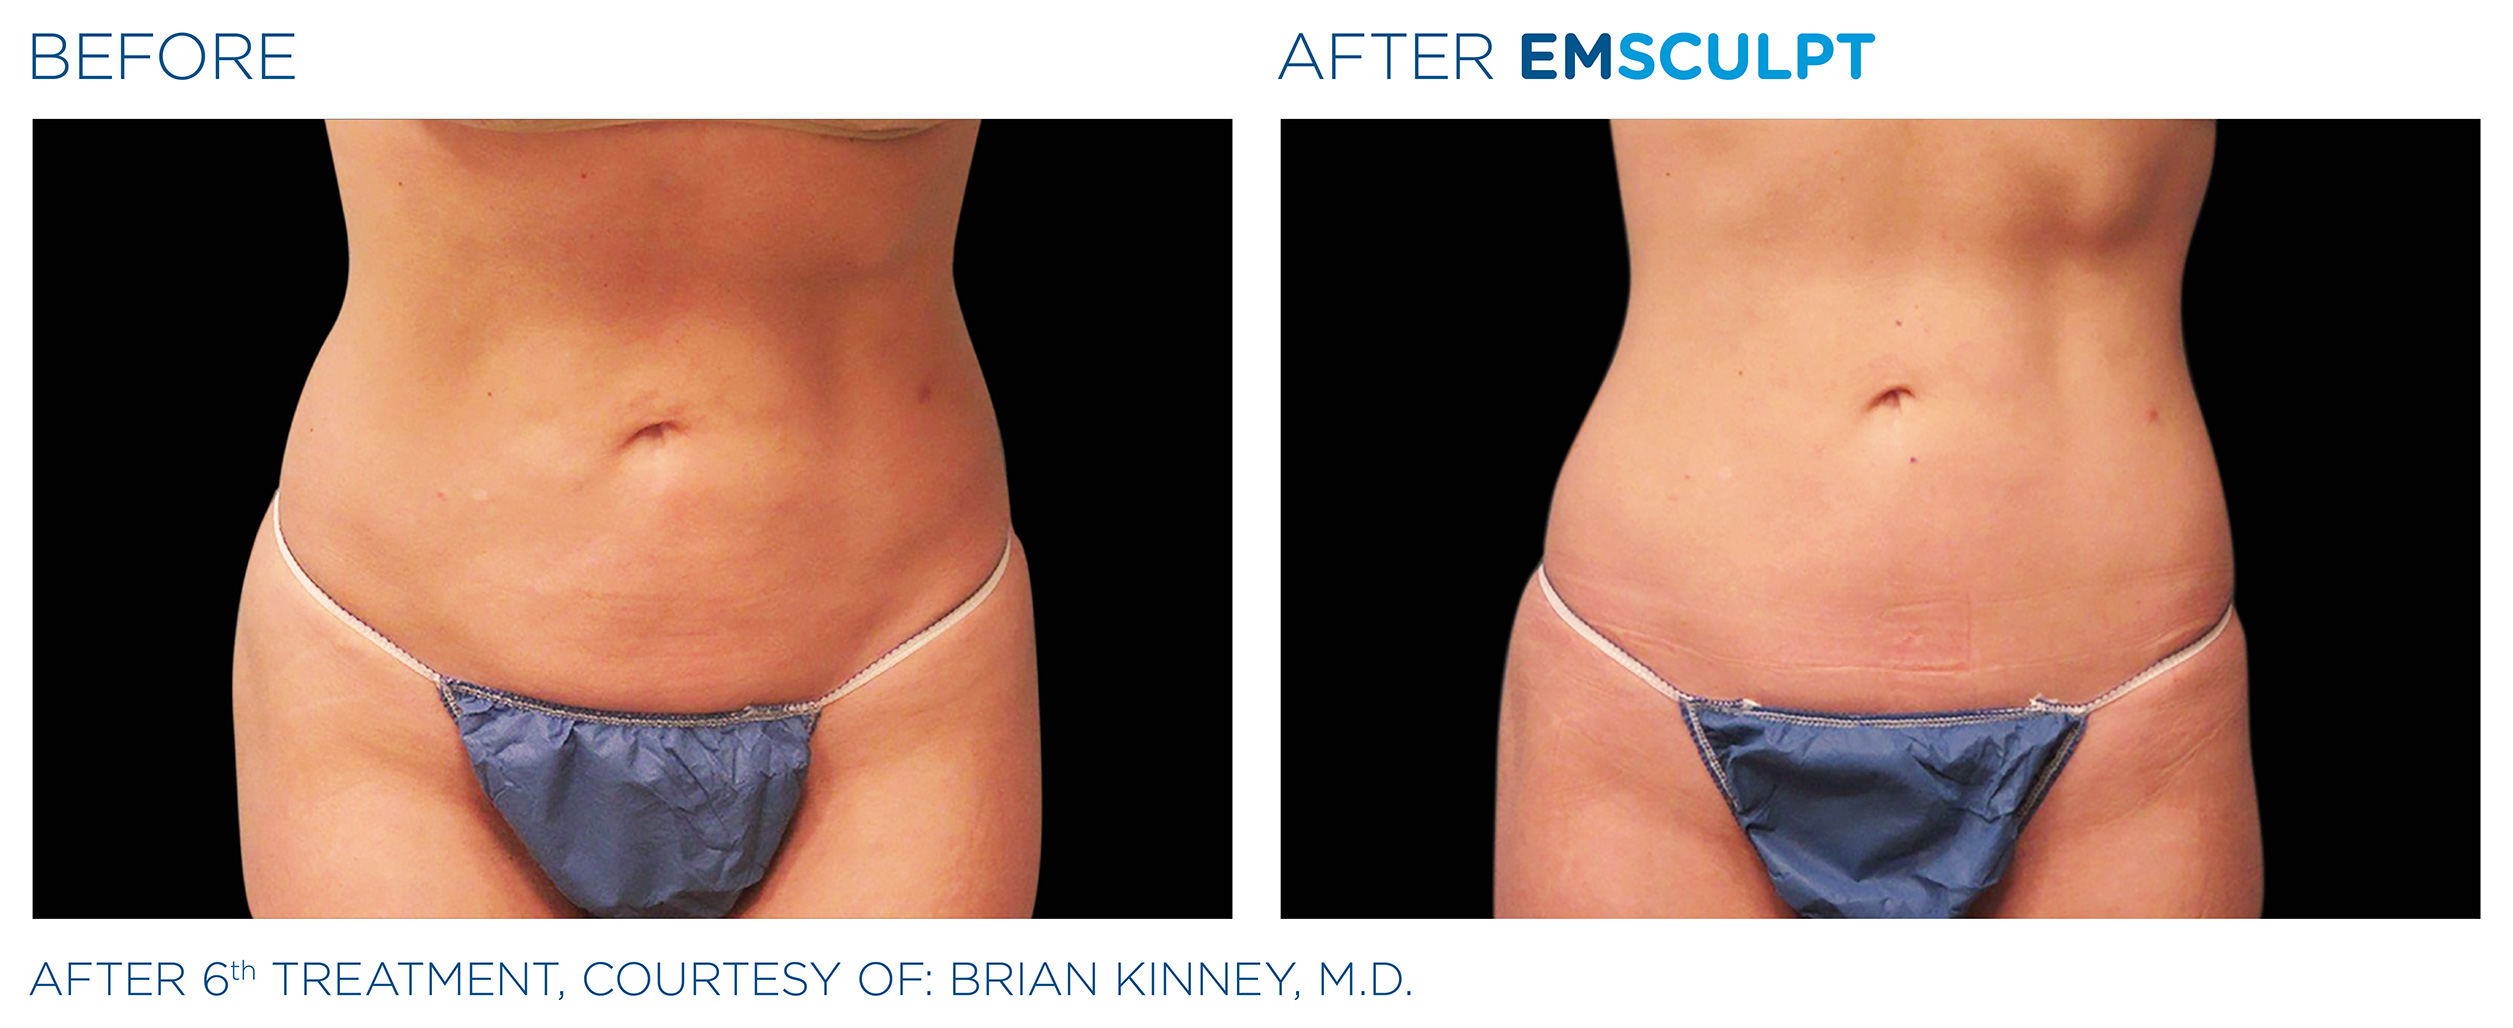 EMSCULPT Before & After Photos | Abdomen 13